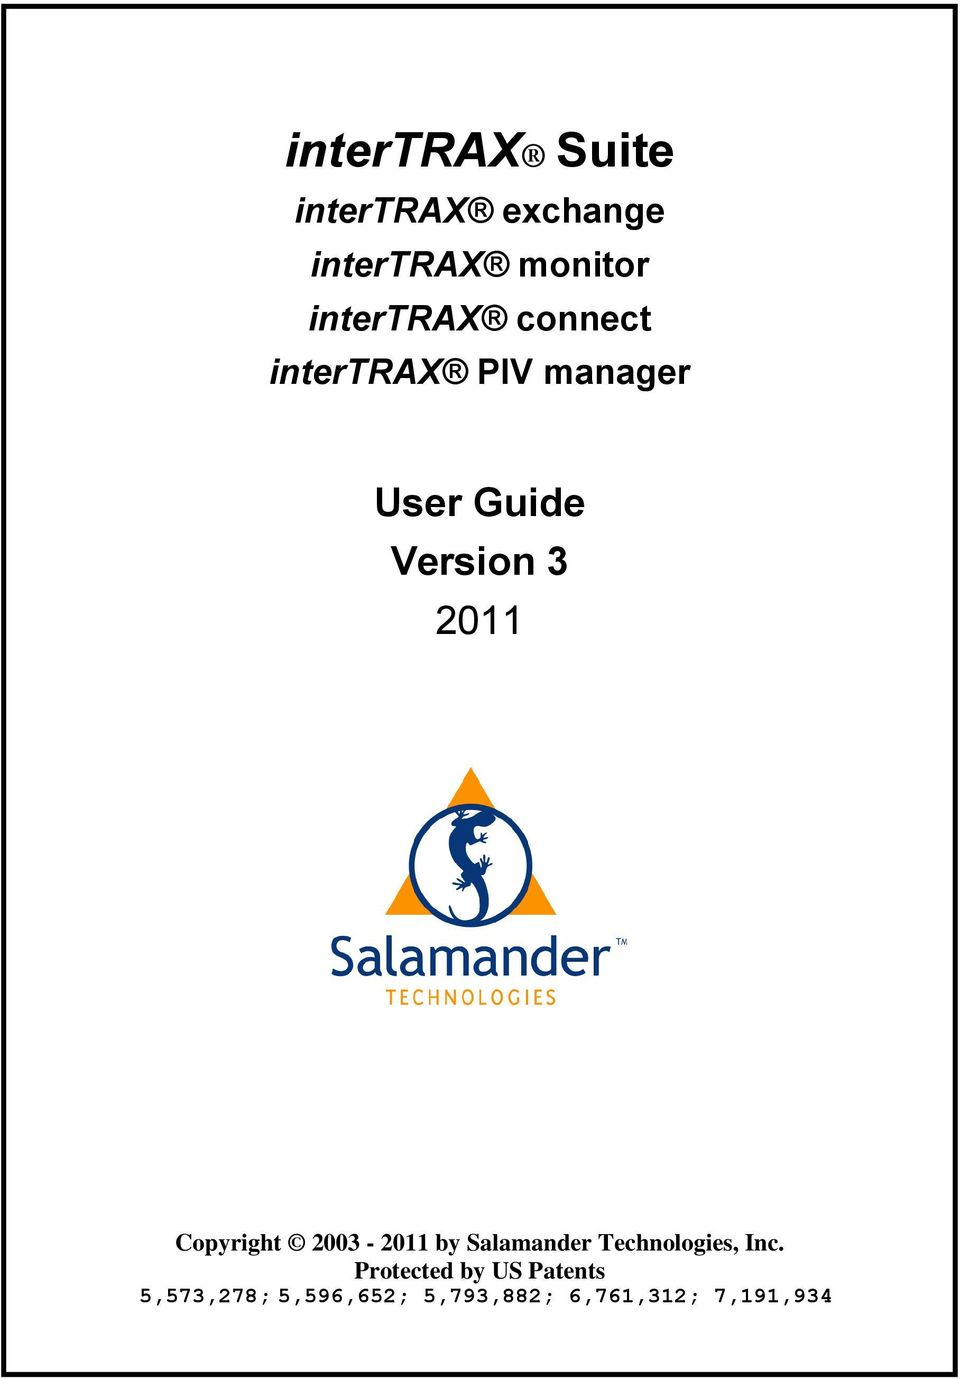 Copyright 2003-2011 by Salamander Technologies, Inc.